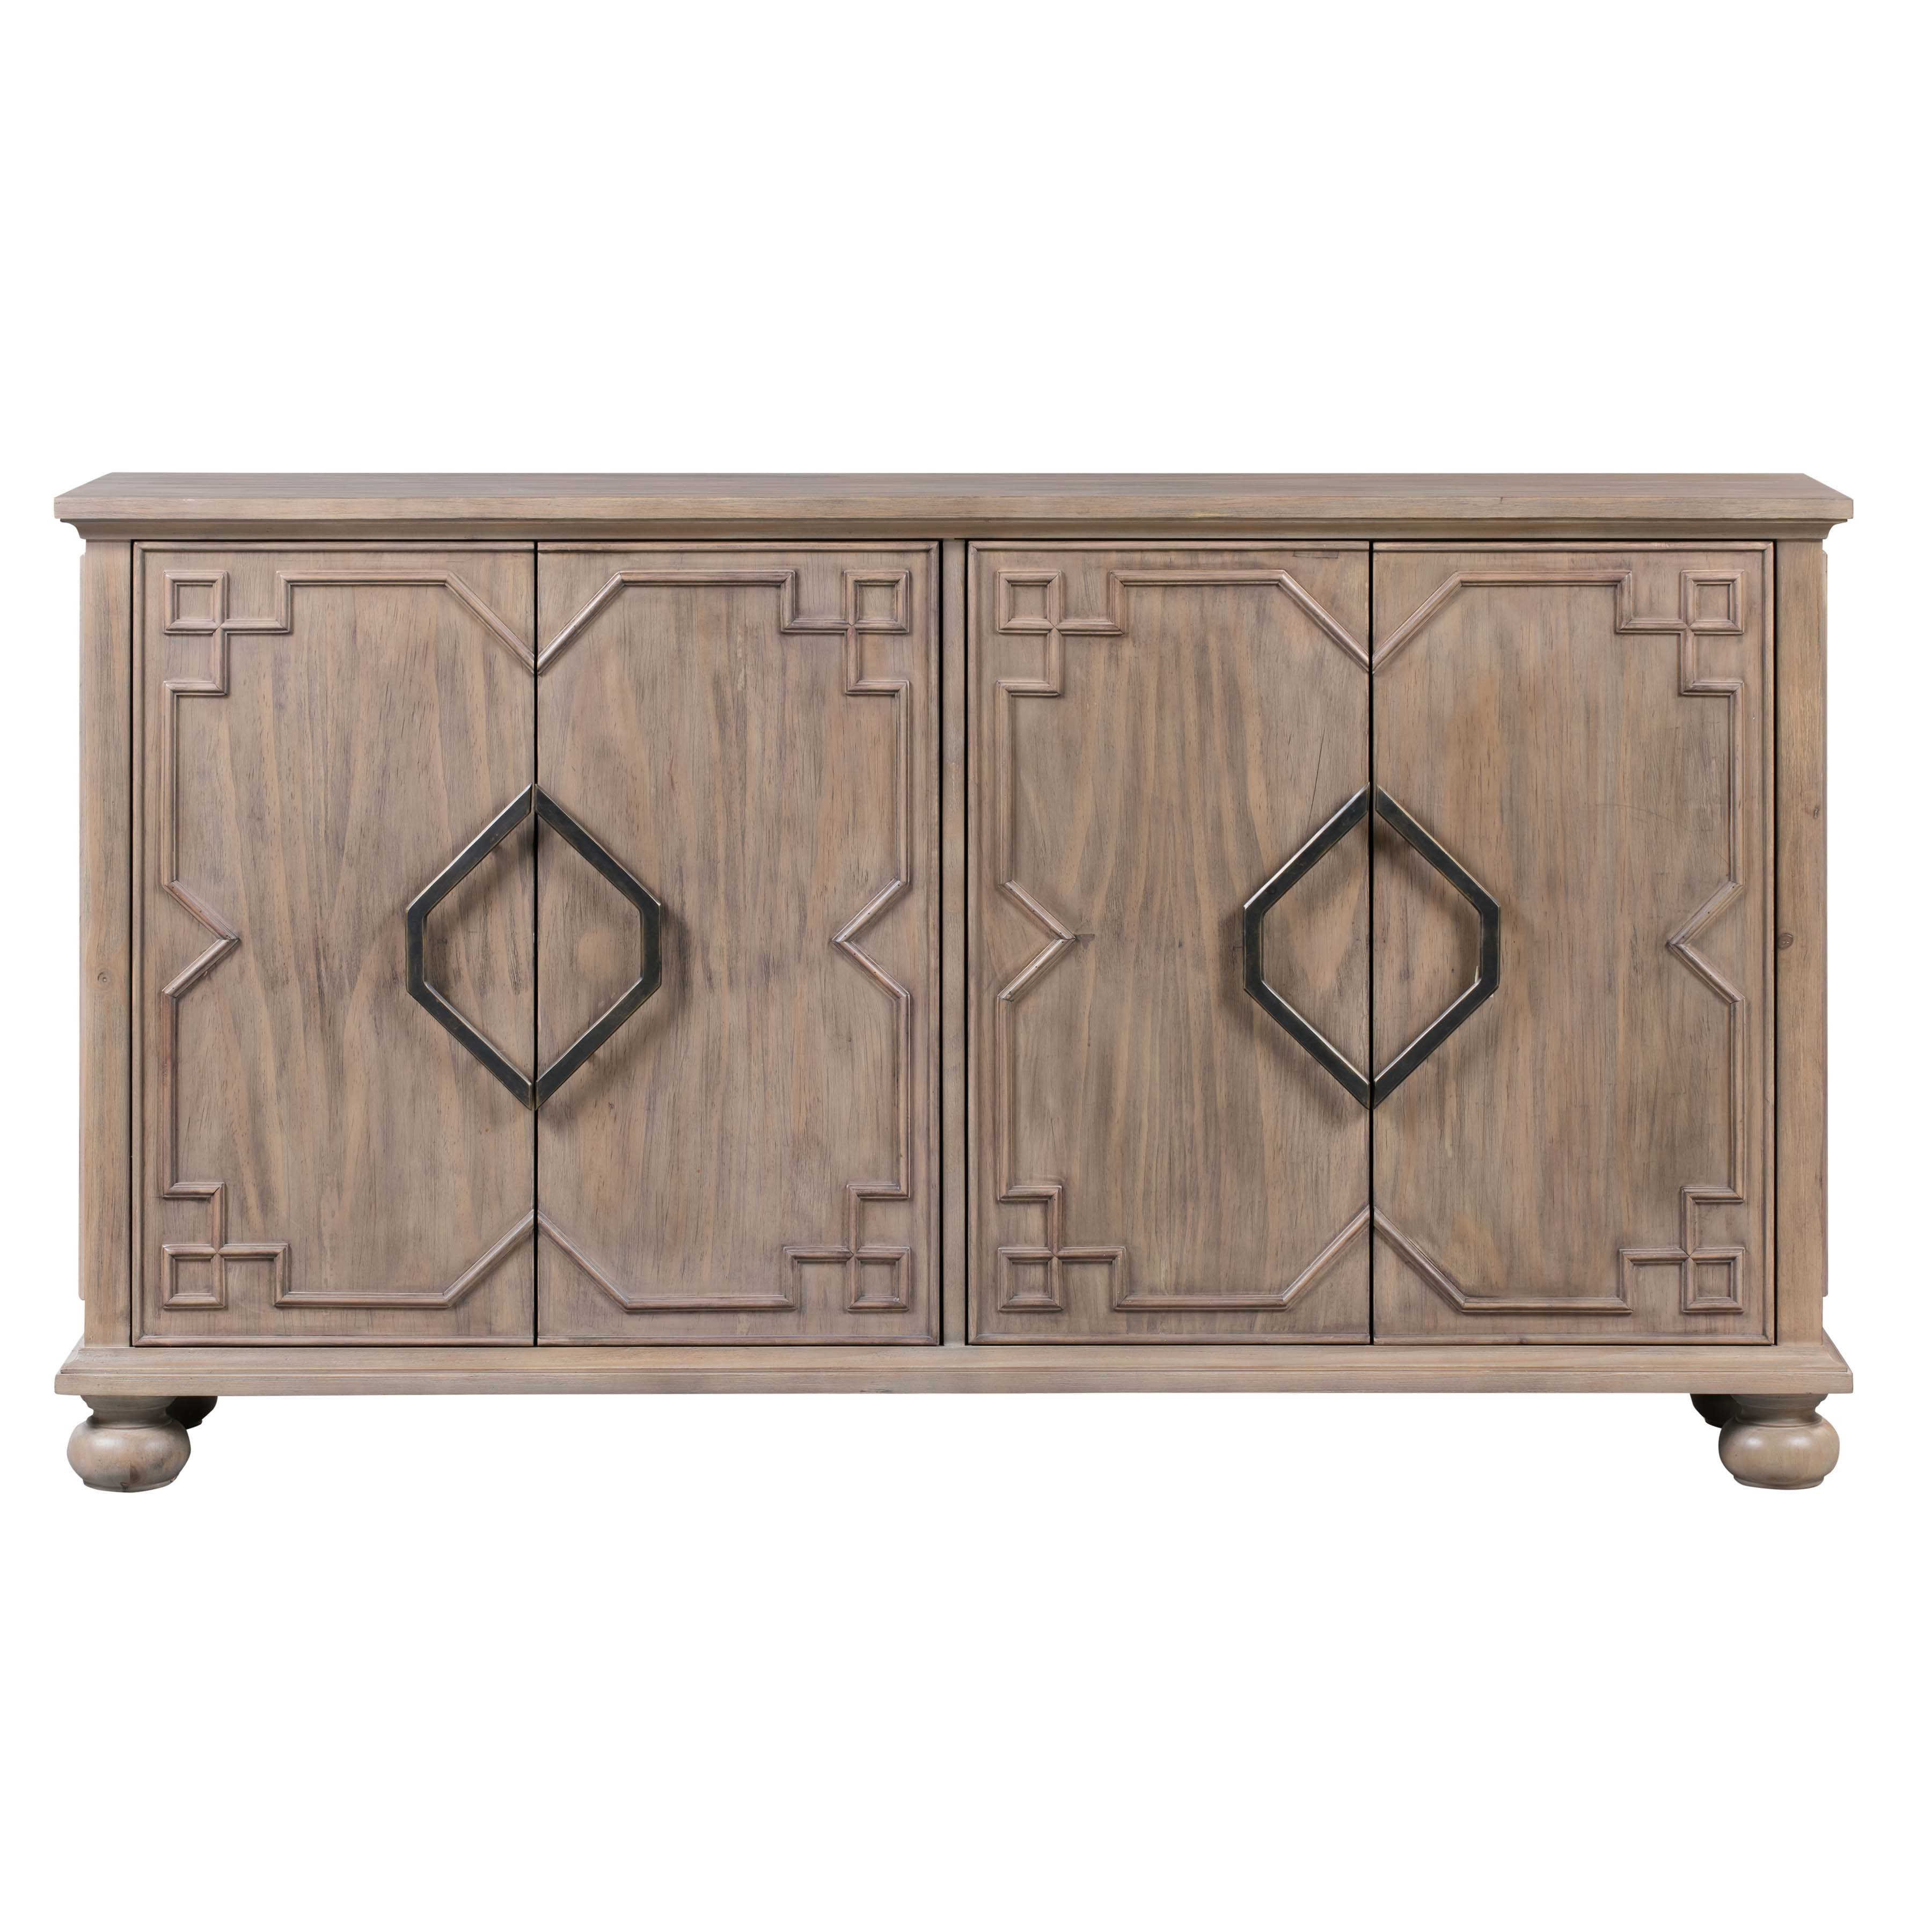 Sideboards & Credenzas | Joss & Main Inside Lainey Credenzas (View 15 of 20)